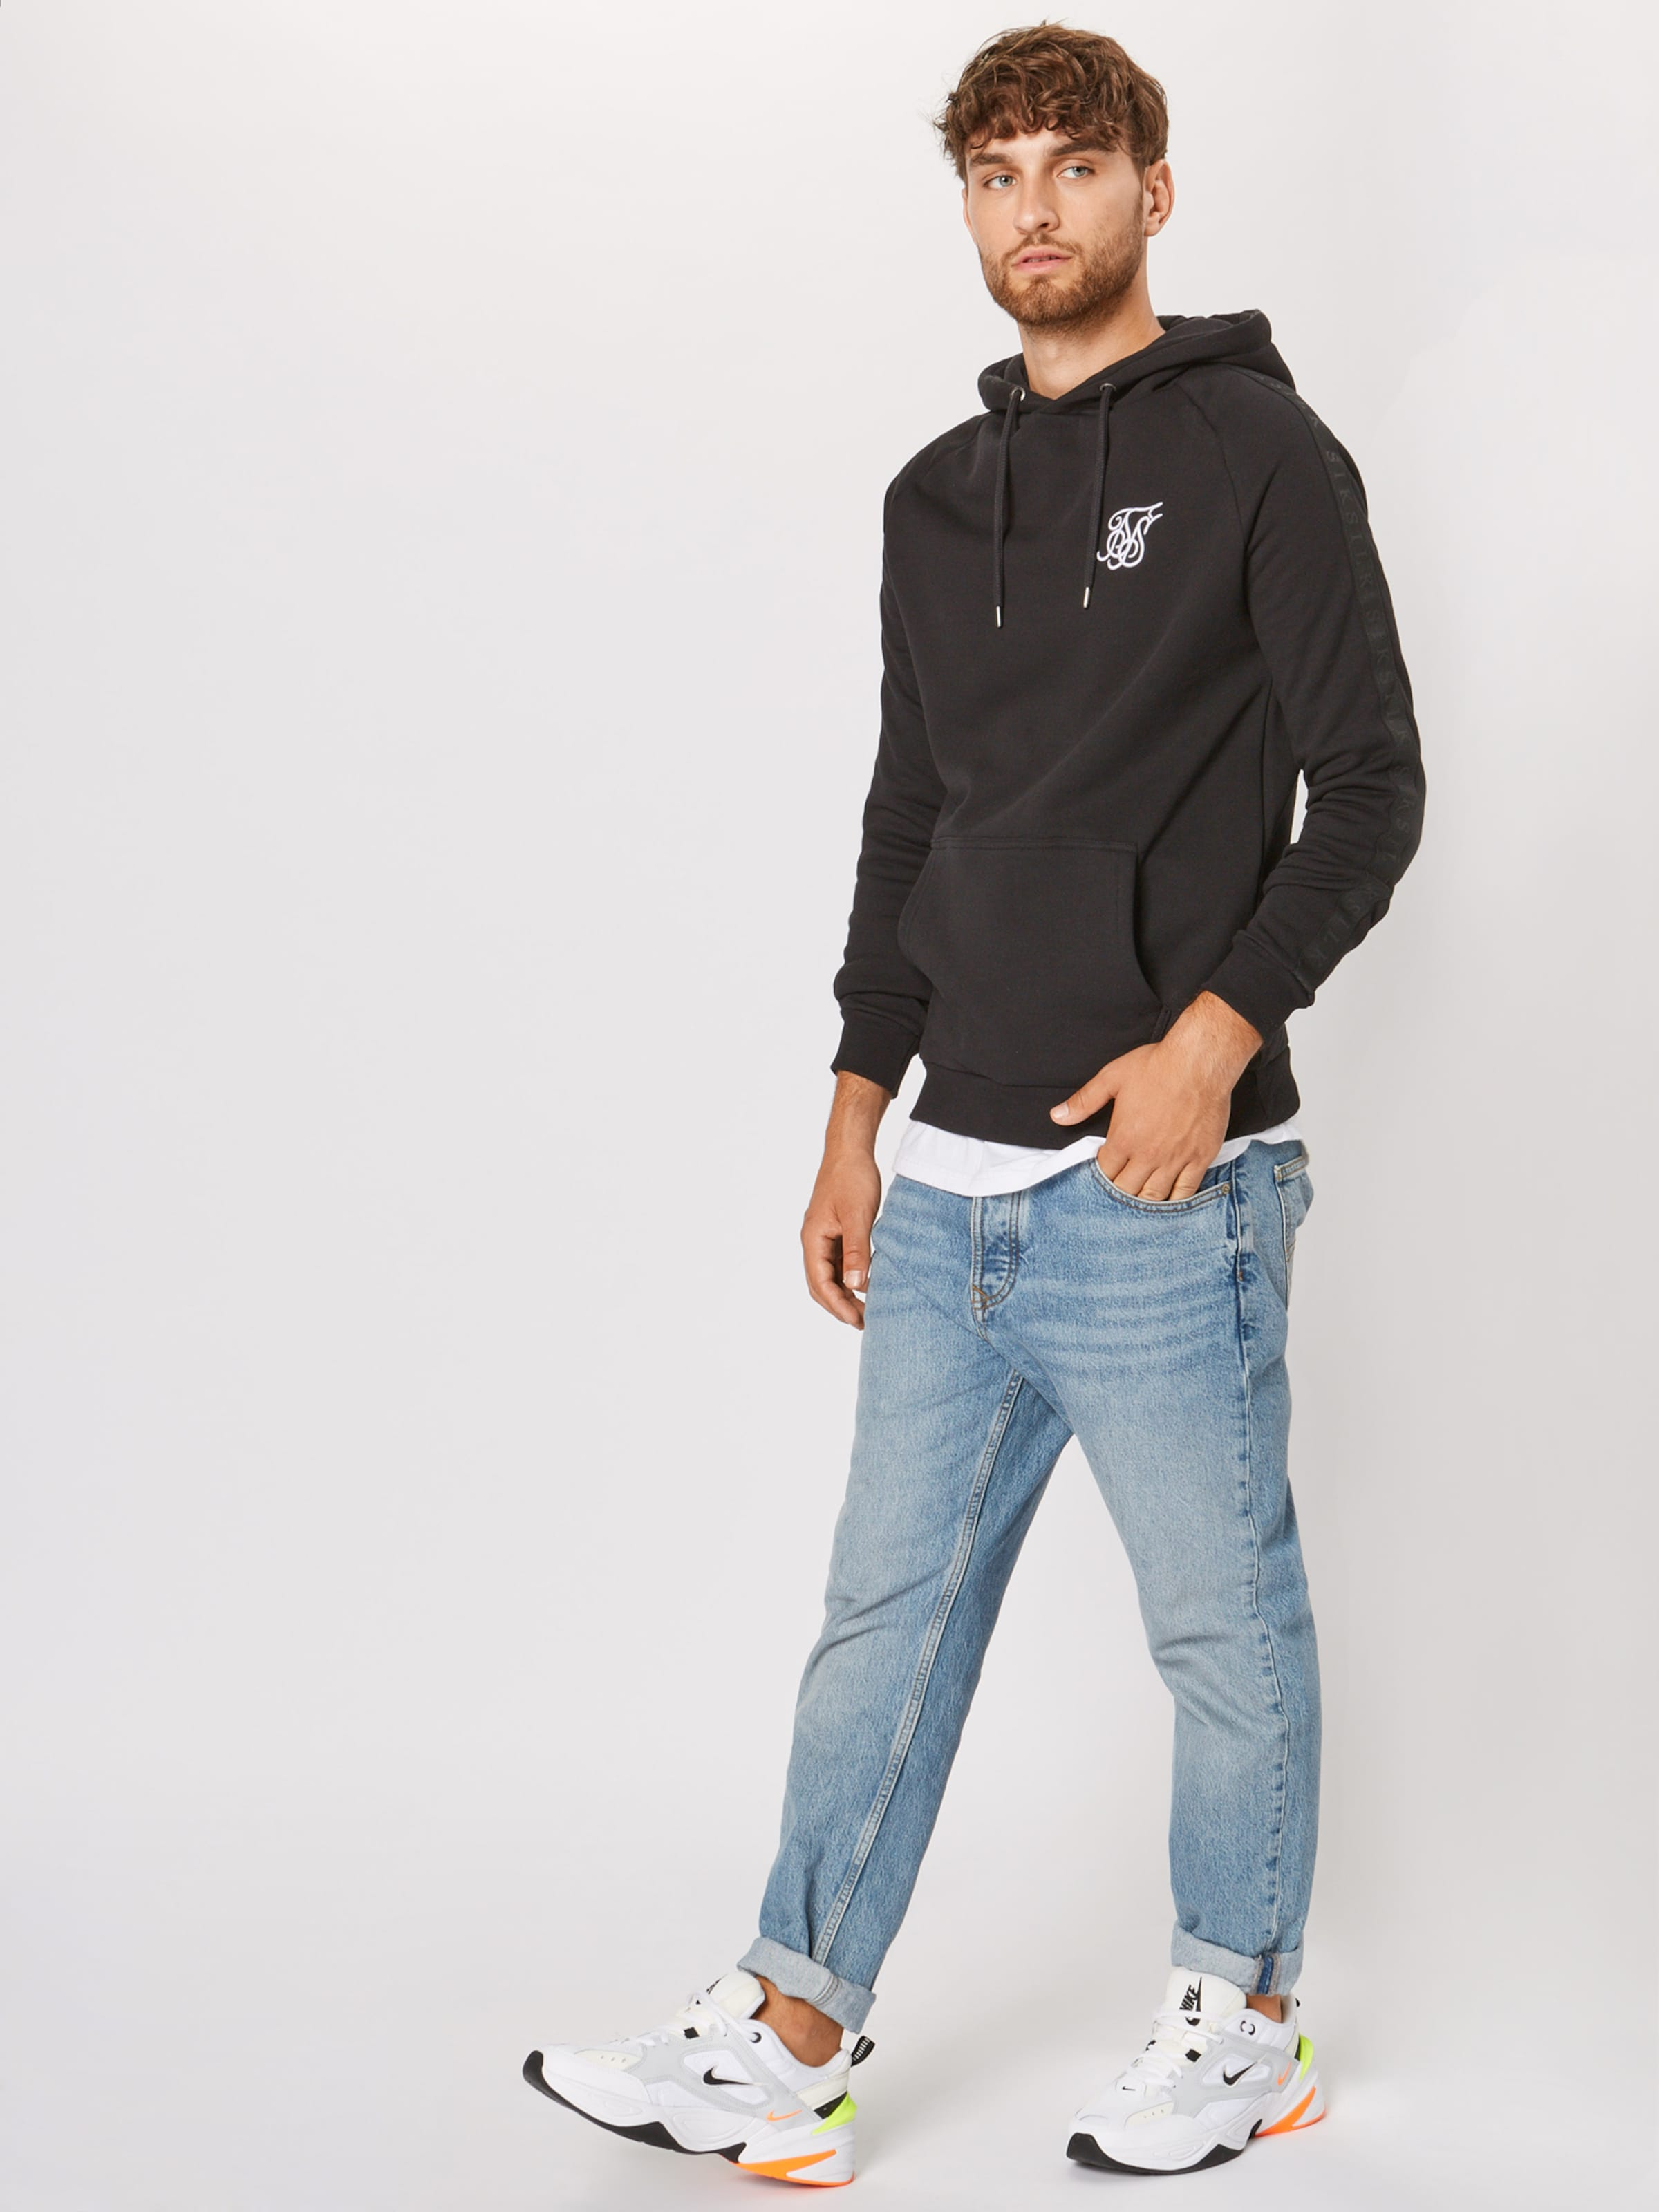 Sweatshirt In Sweatshirt Siksilk Siksilk Sweatshirt Schwarz Schwarz Siksilk In bfvym6Y7gI